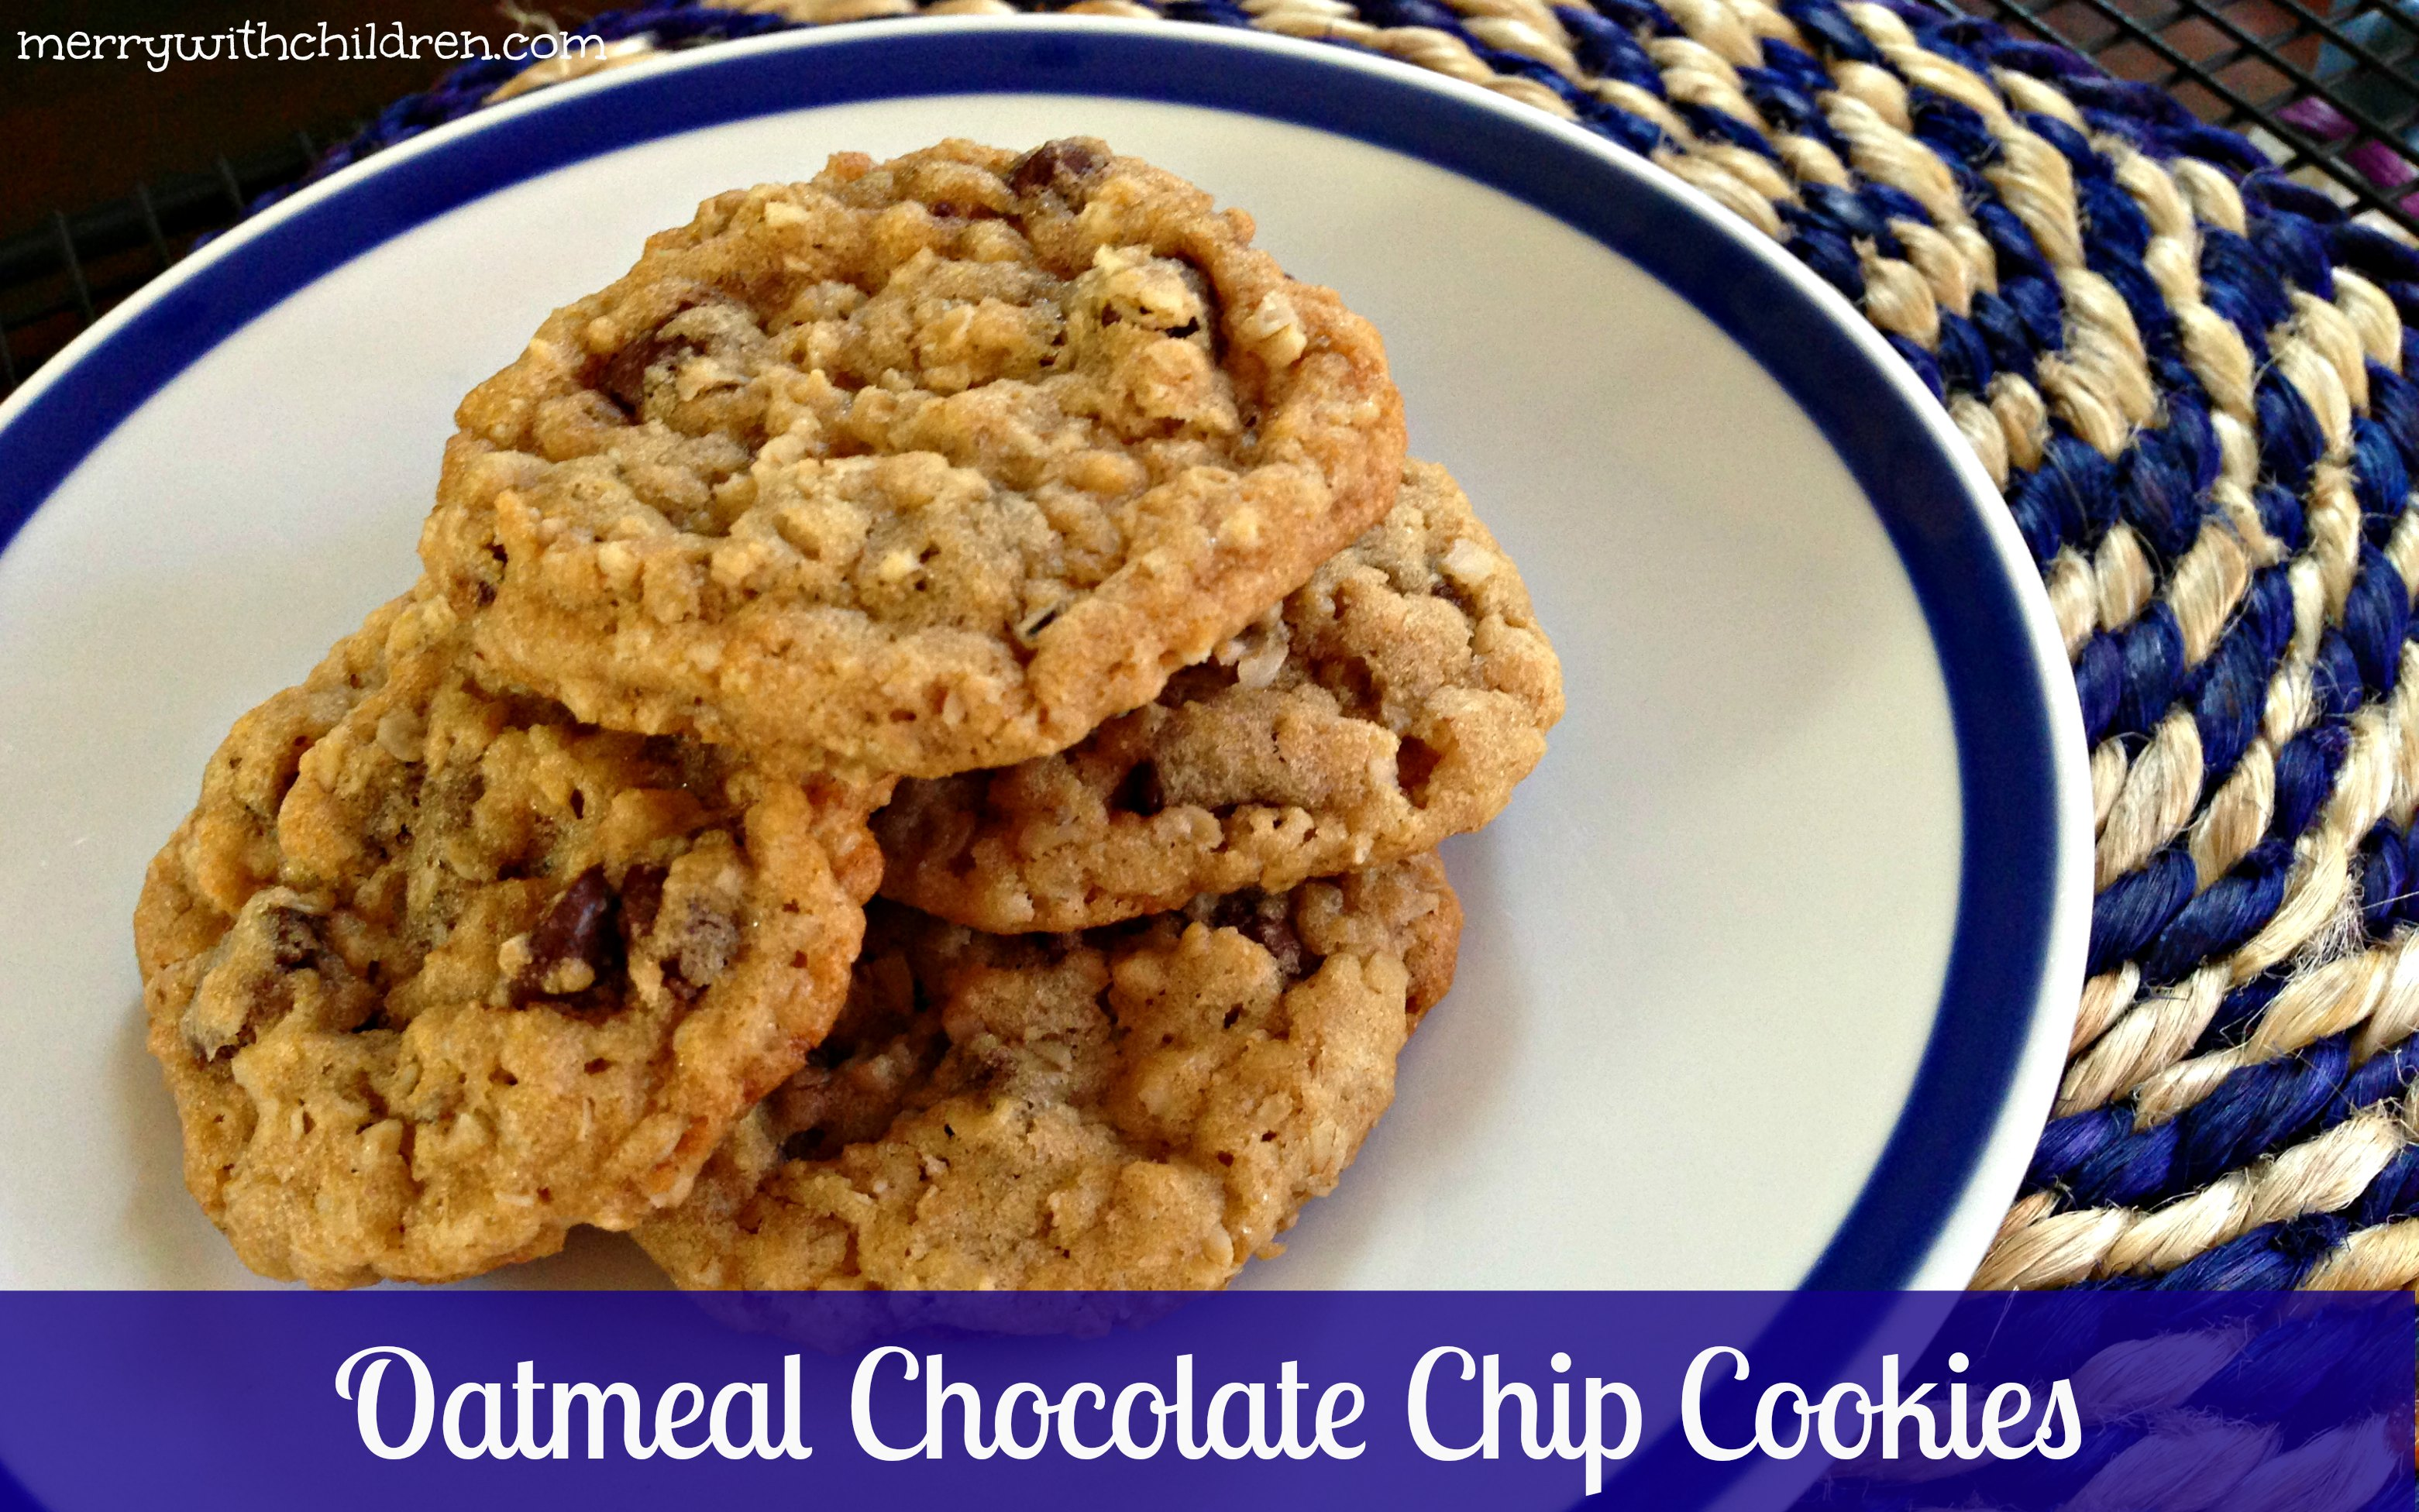 |http://www.bettycrocker.com/recipes/oatmeal-chocolate-chip-cookies ...